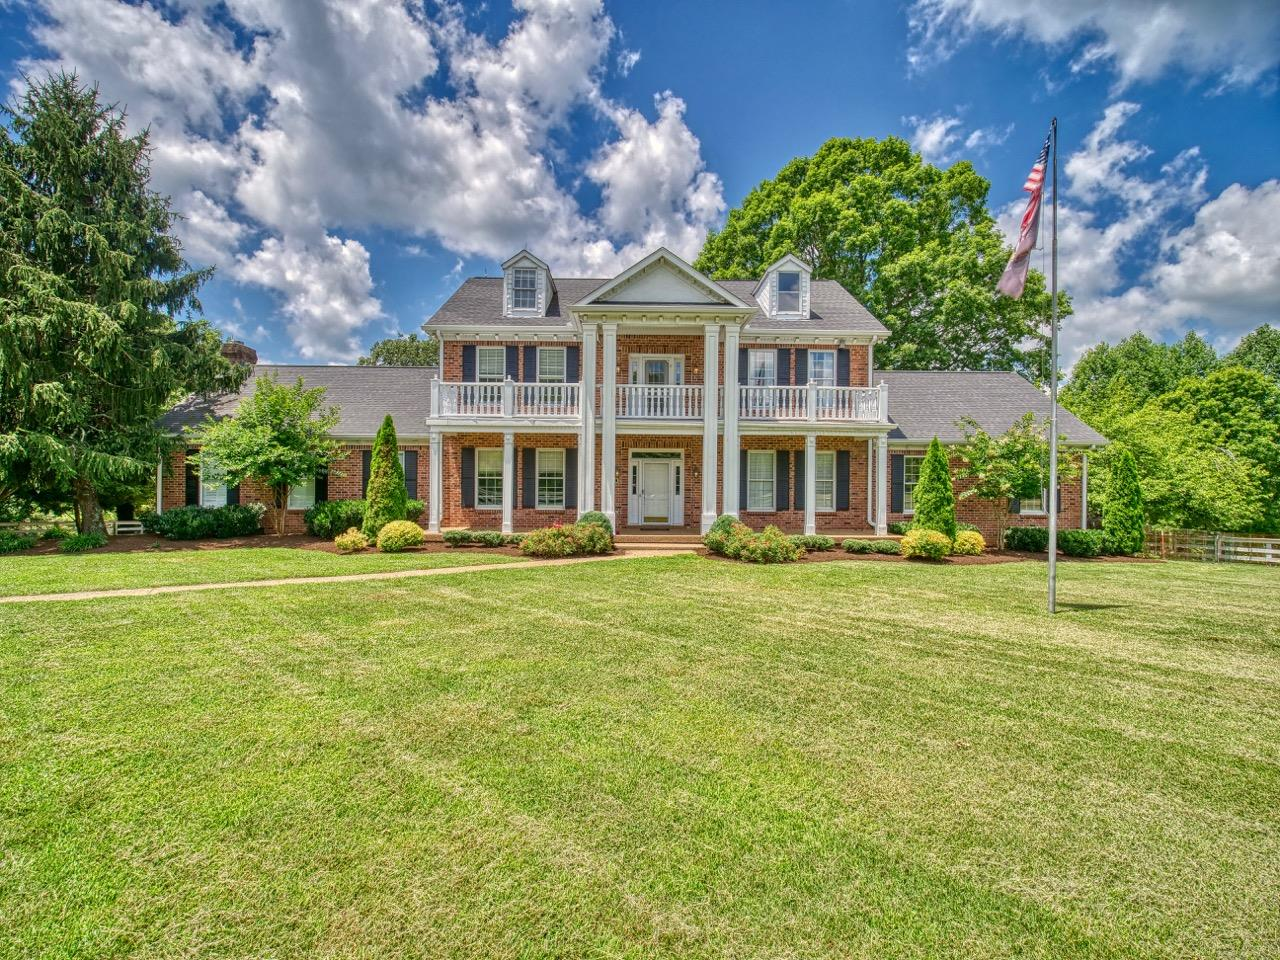 154 Oak Forest Dr, Goodlettsville, TN 37072 - Goodlettsville, TN real estate listing